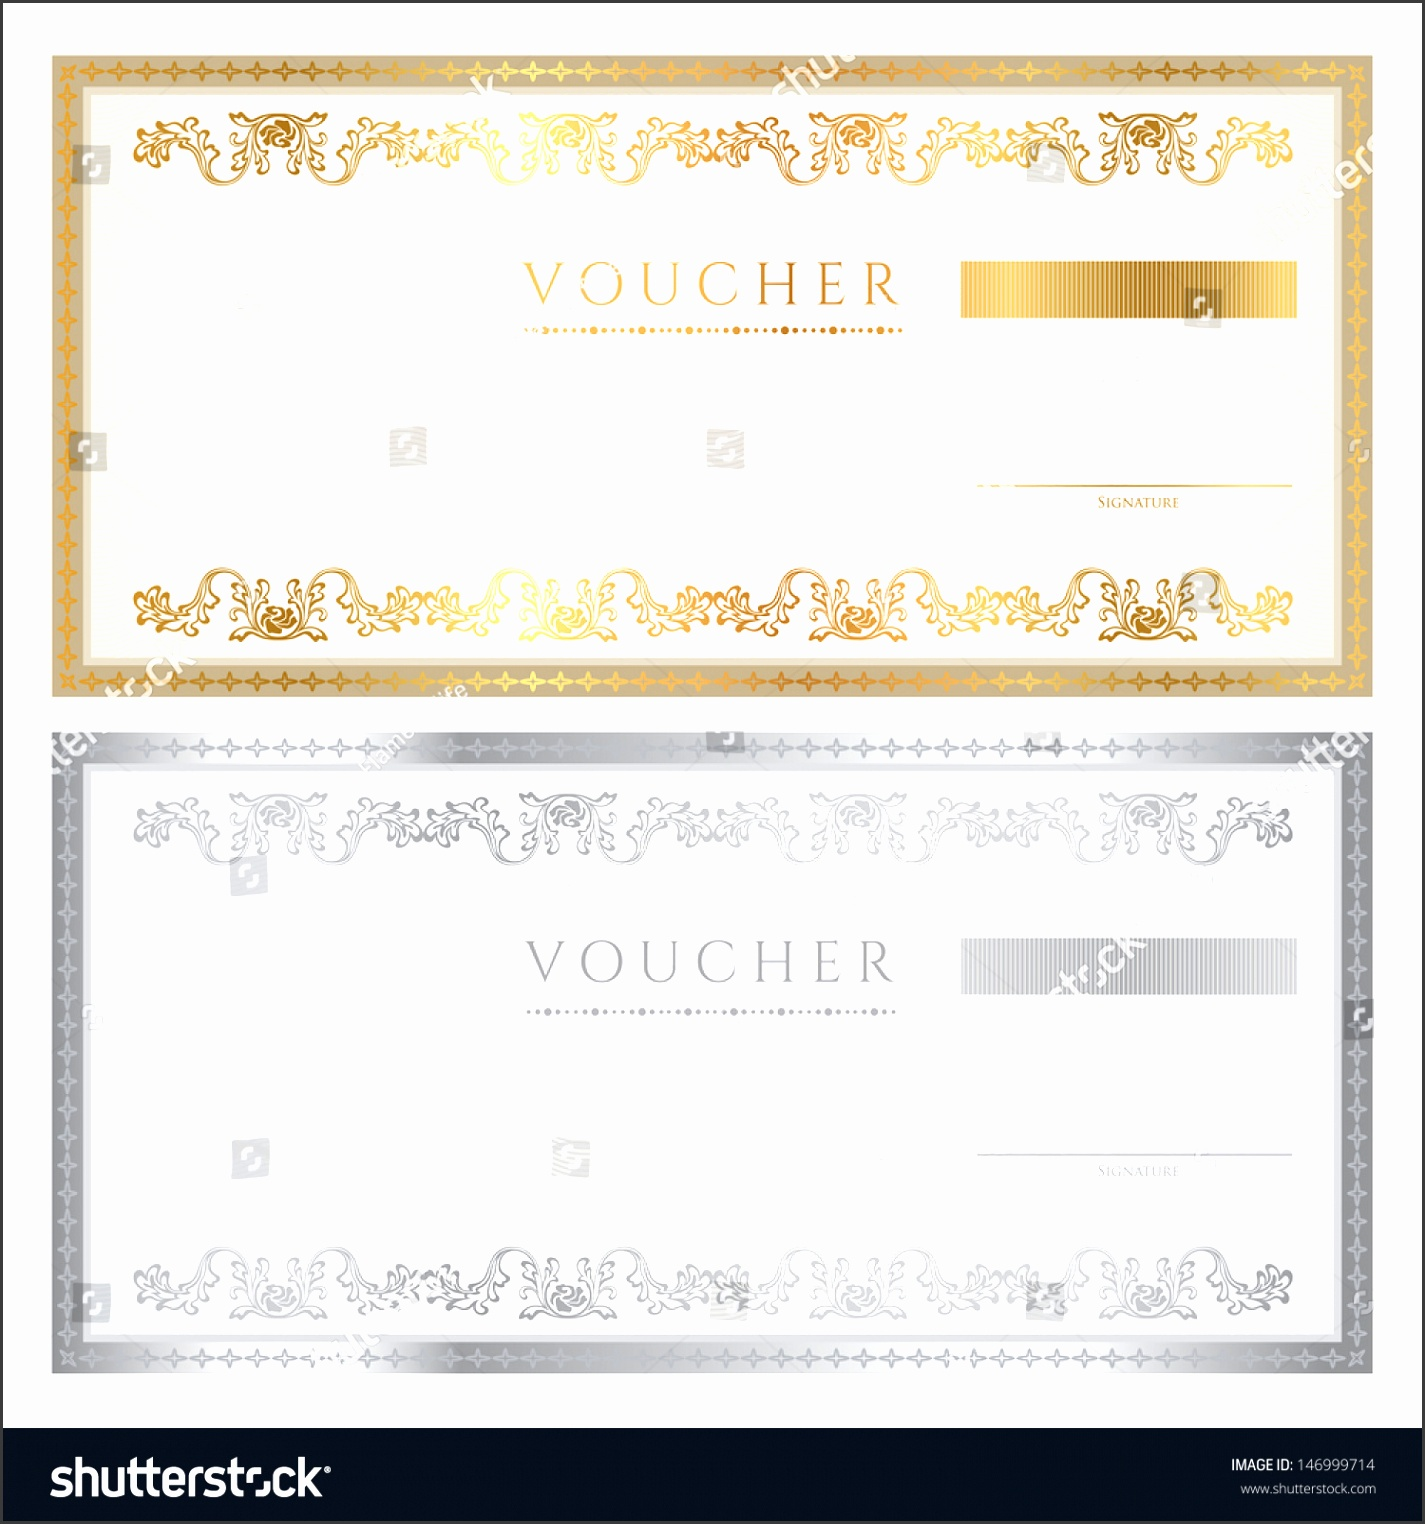 Voucher template with guilloche pattern watermark and border Background design for t voucher